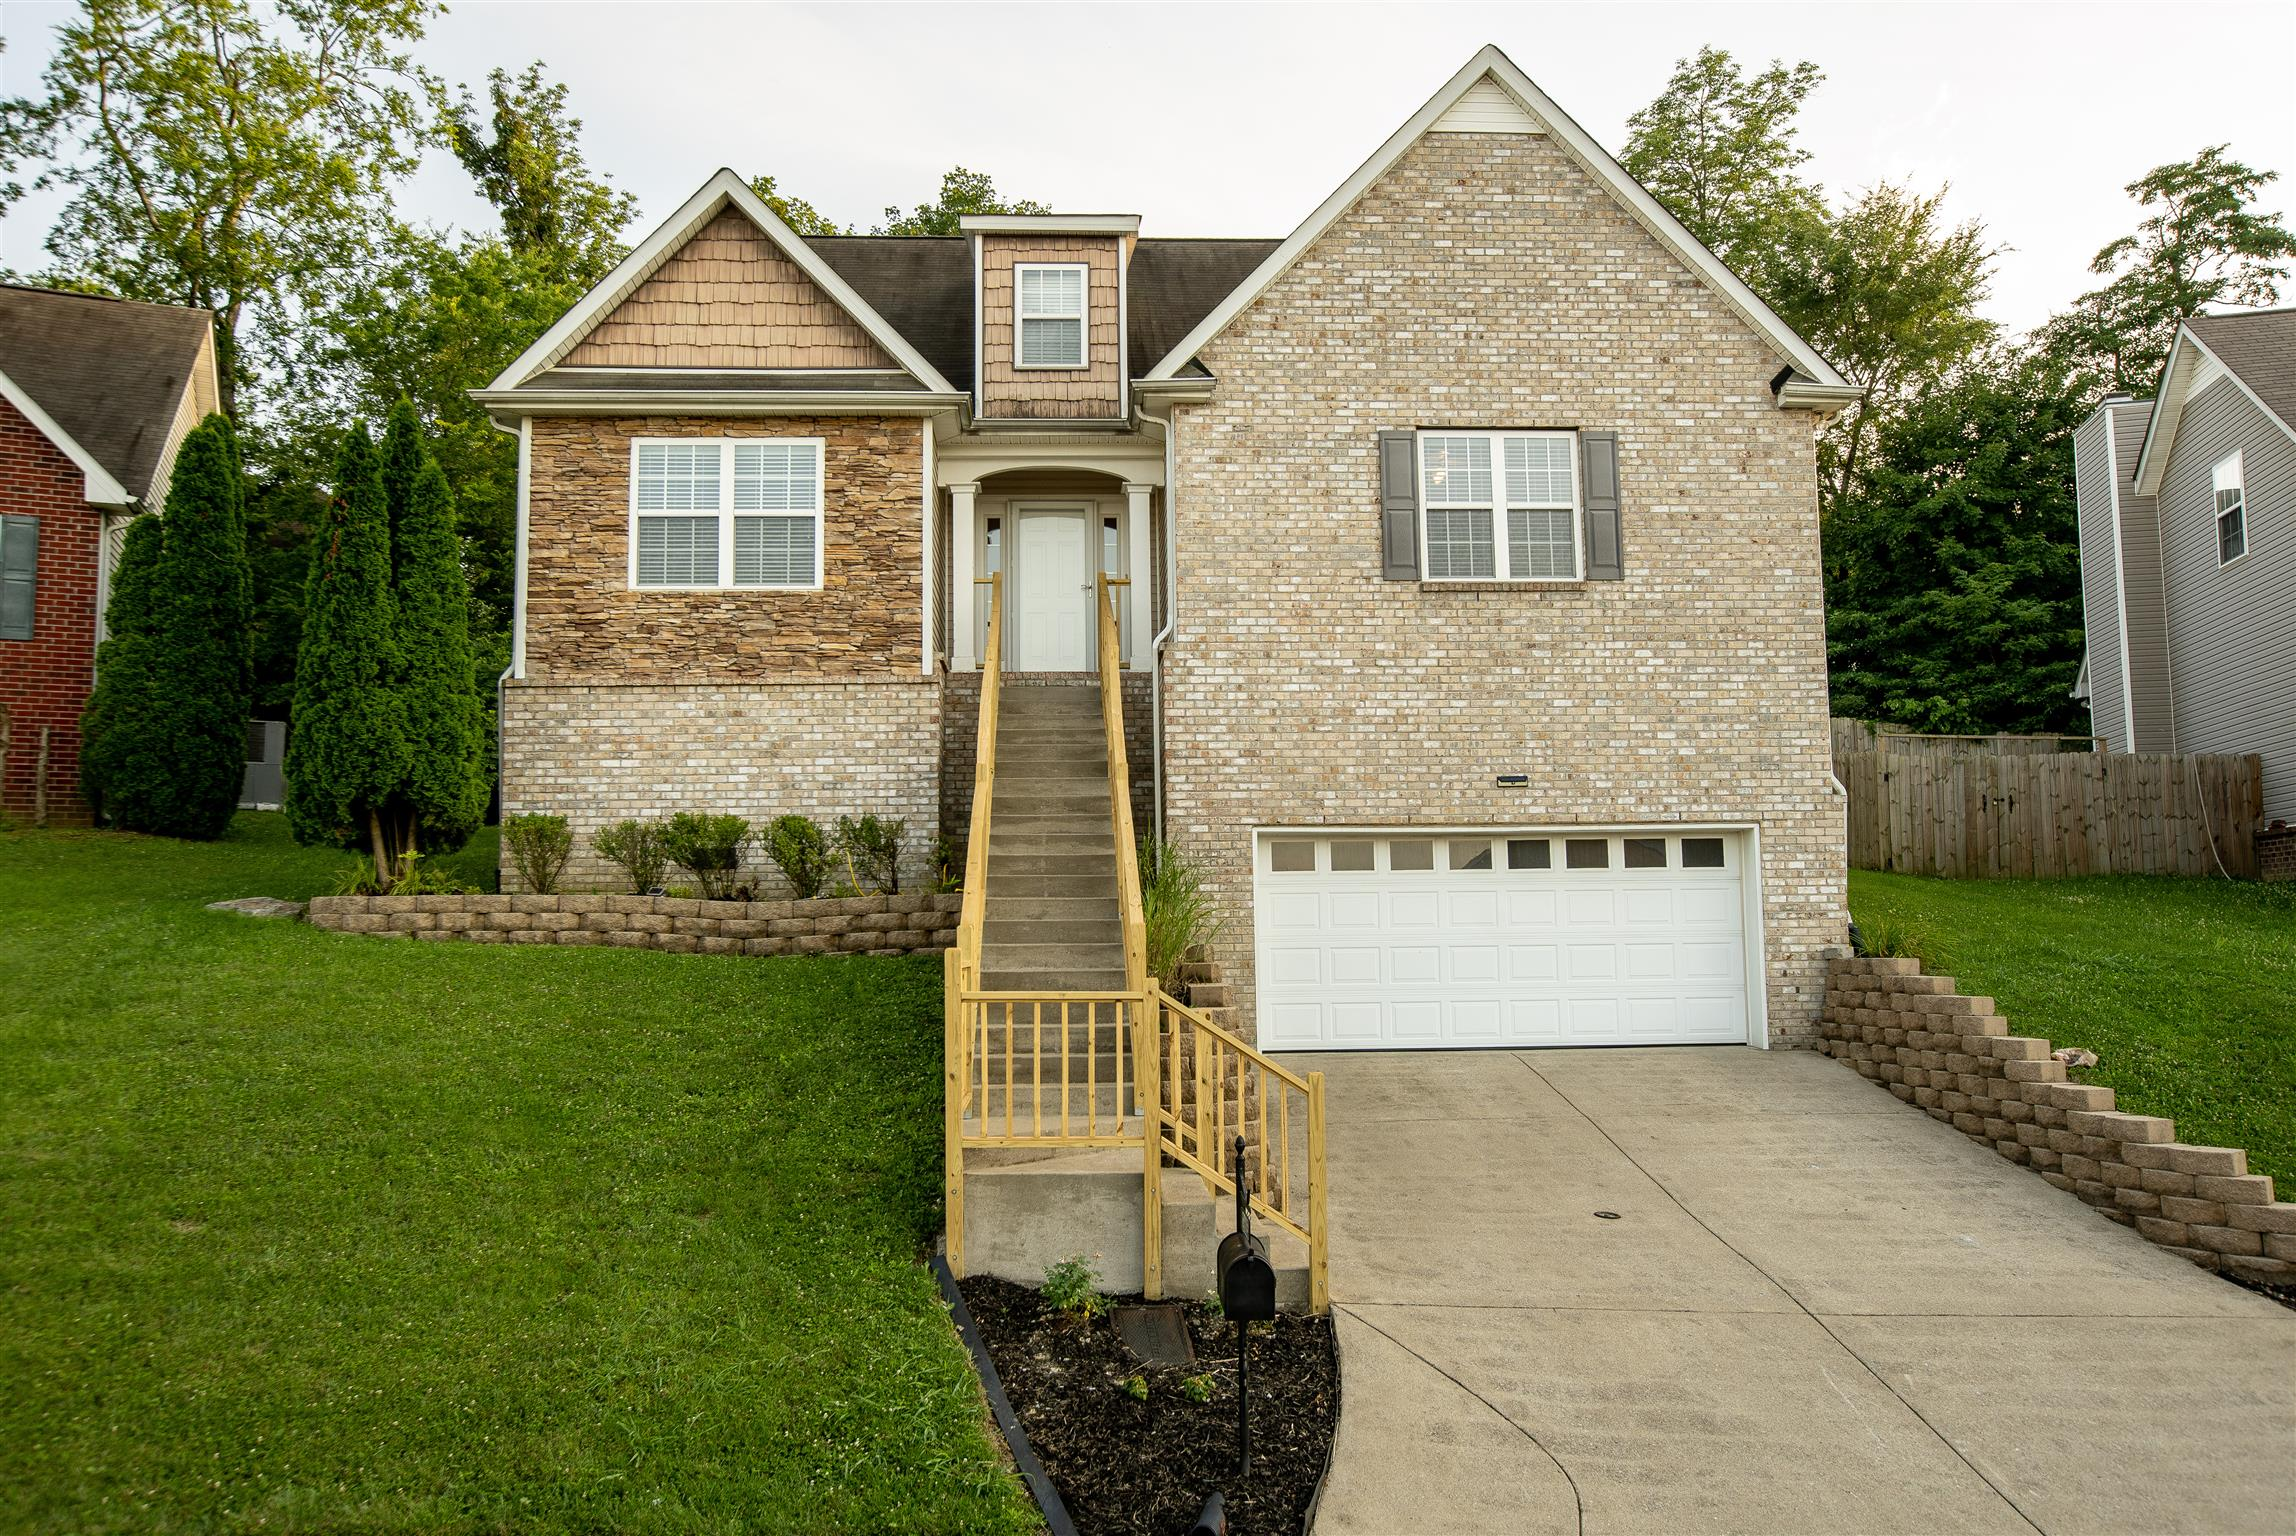 2605 Mountain Dale Ct, Nashville-Antioch in Davidson County County, TN 37013 Home for Sale